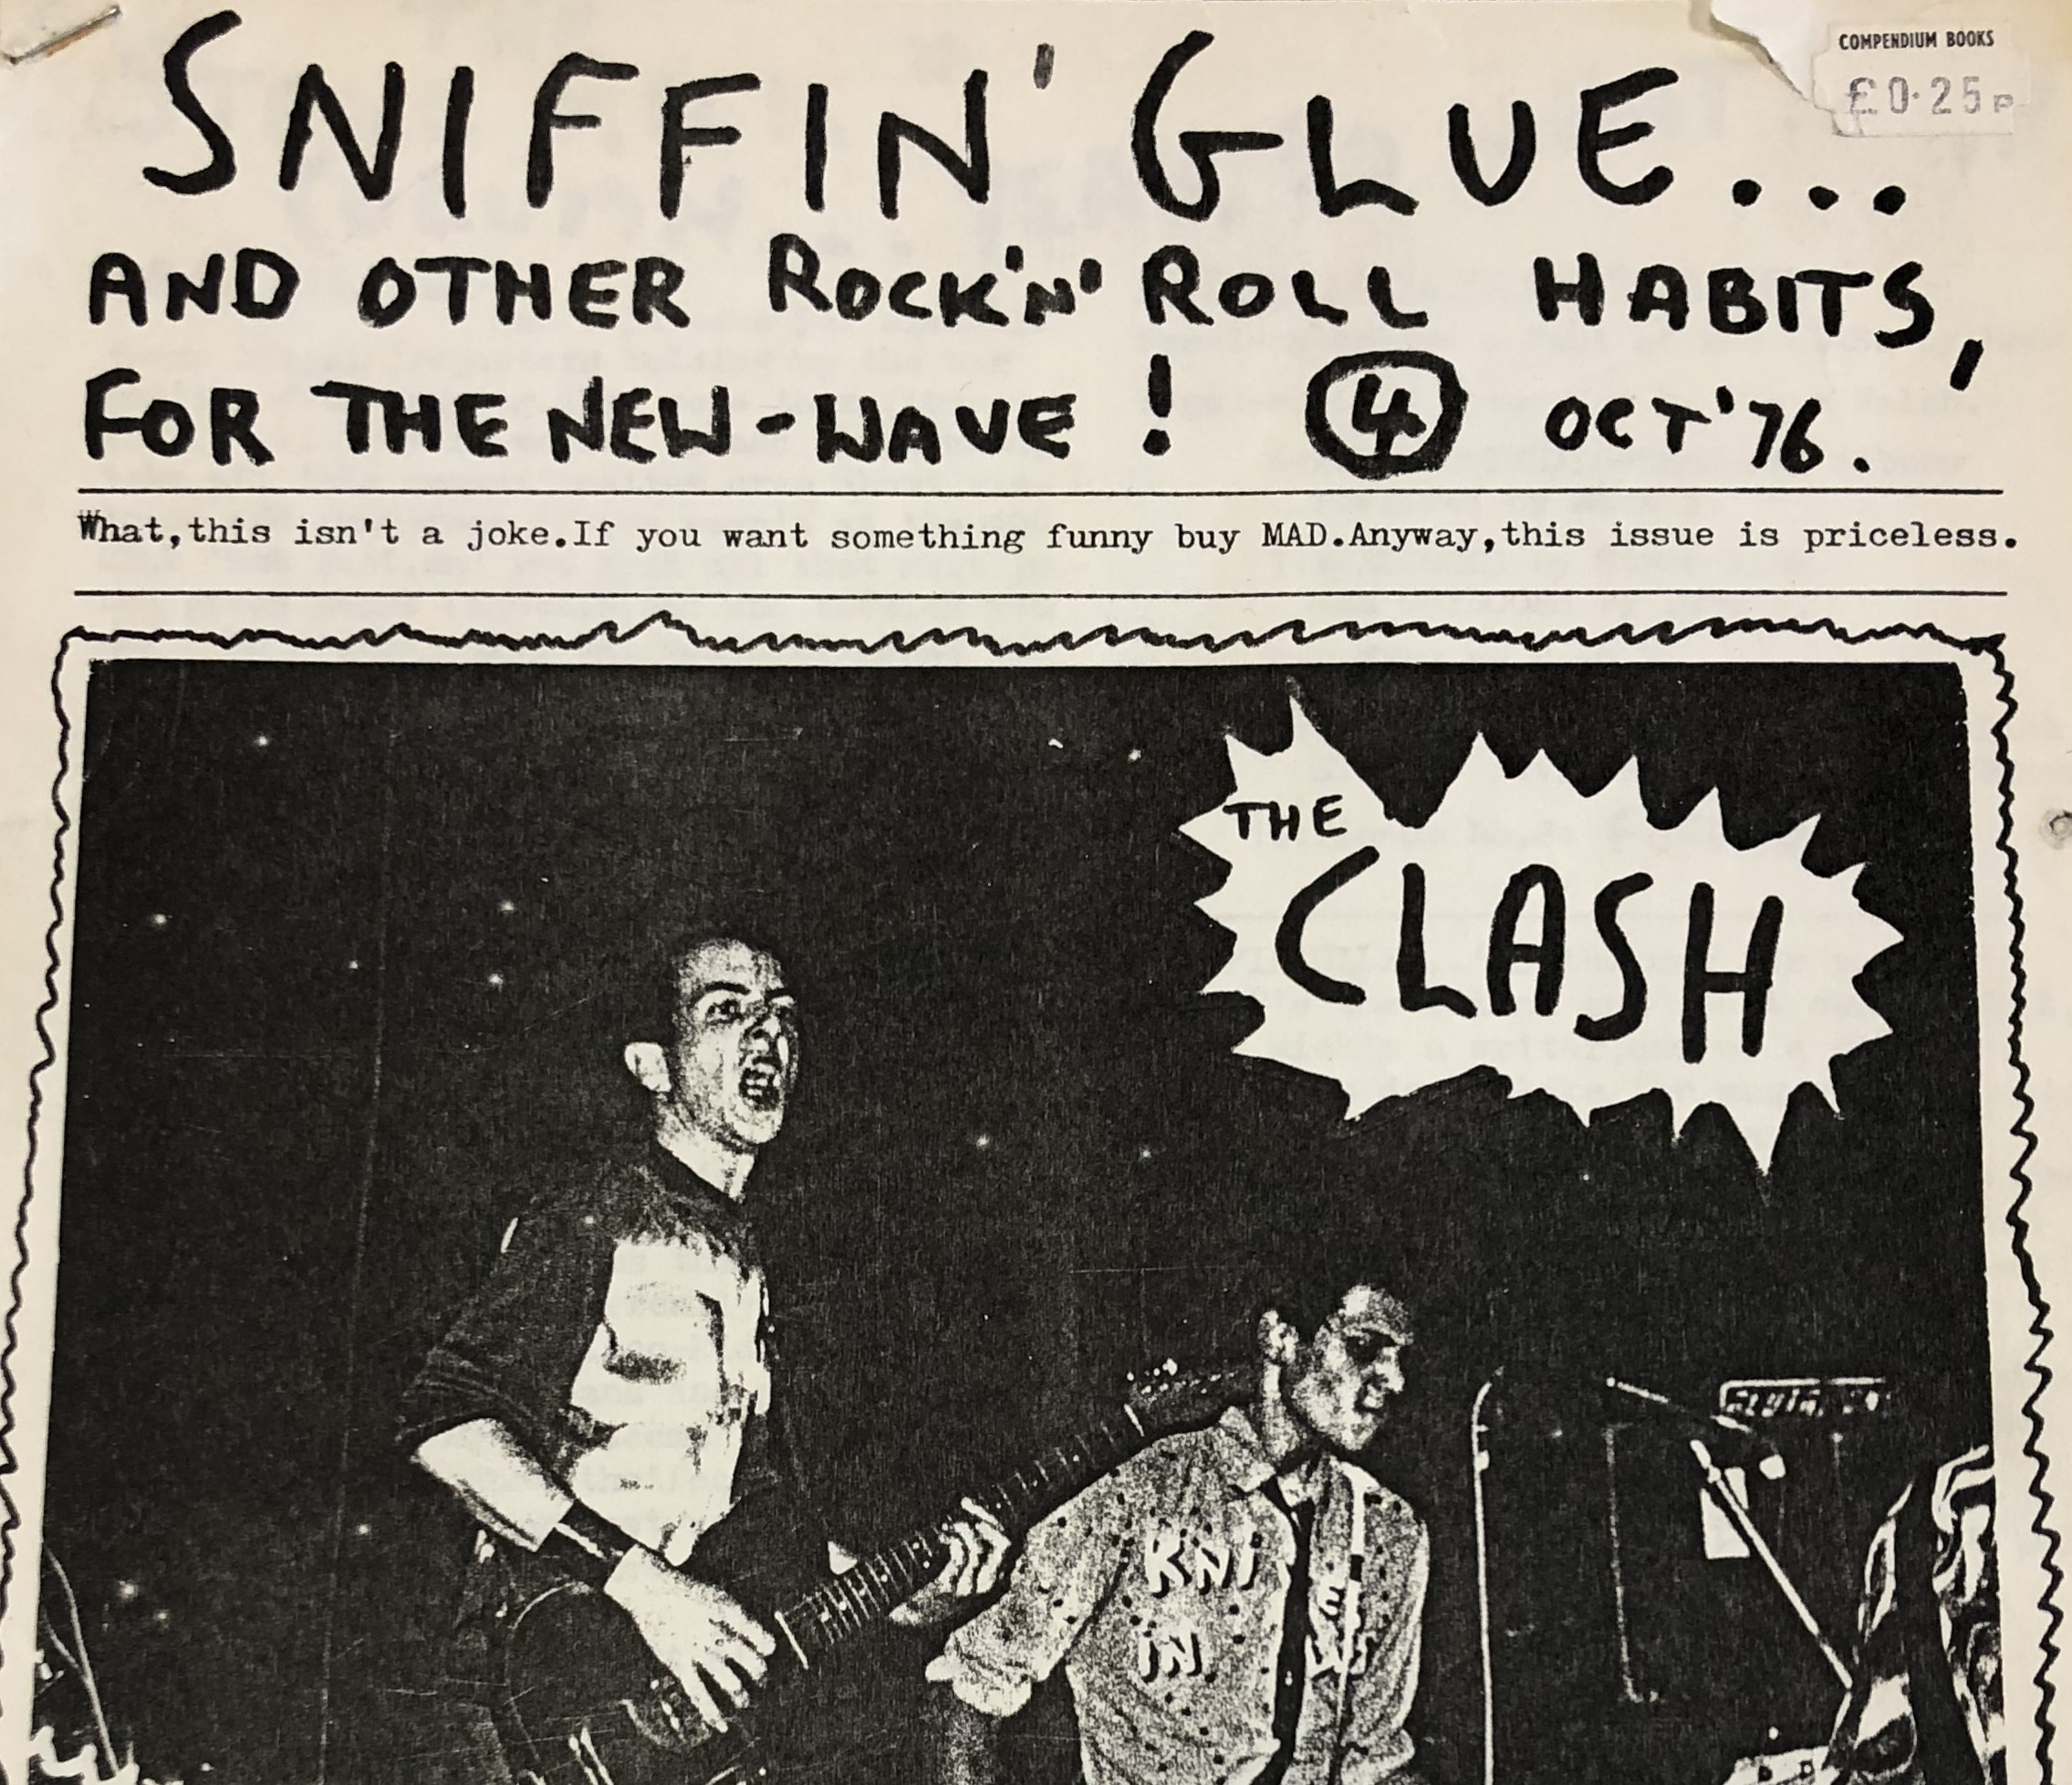 The title page of Issue 4 of Sniffin' Glue, featuring a photo of the Clash.